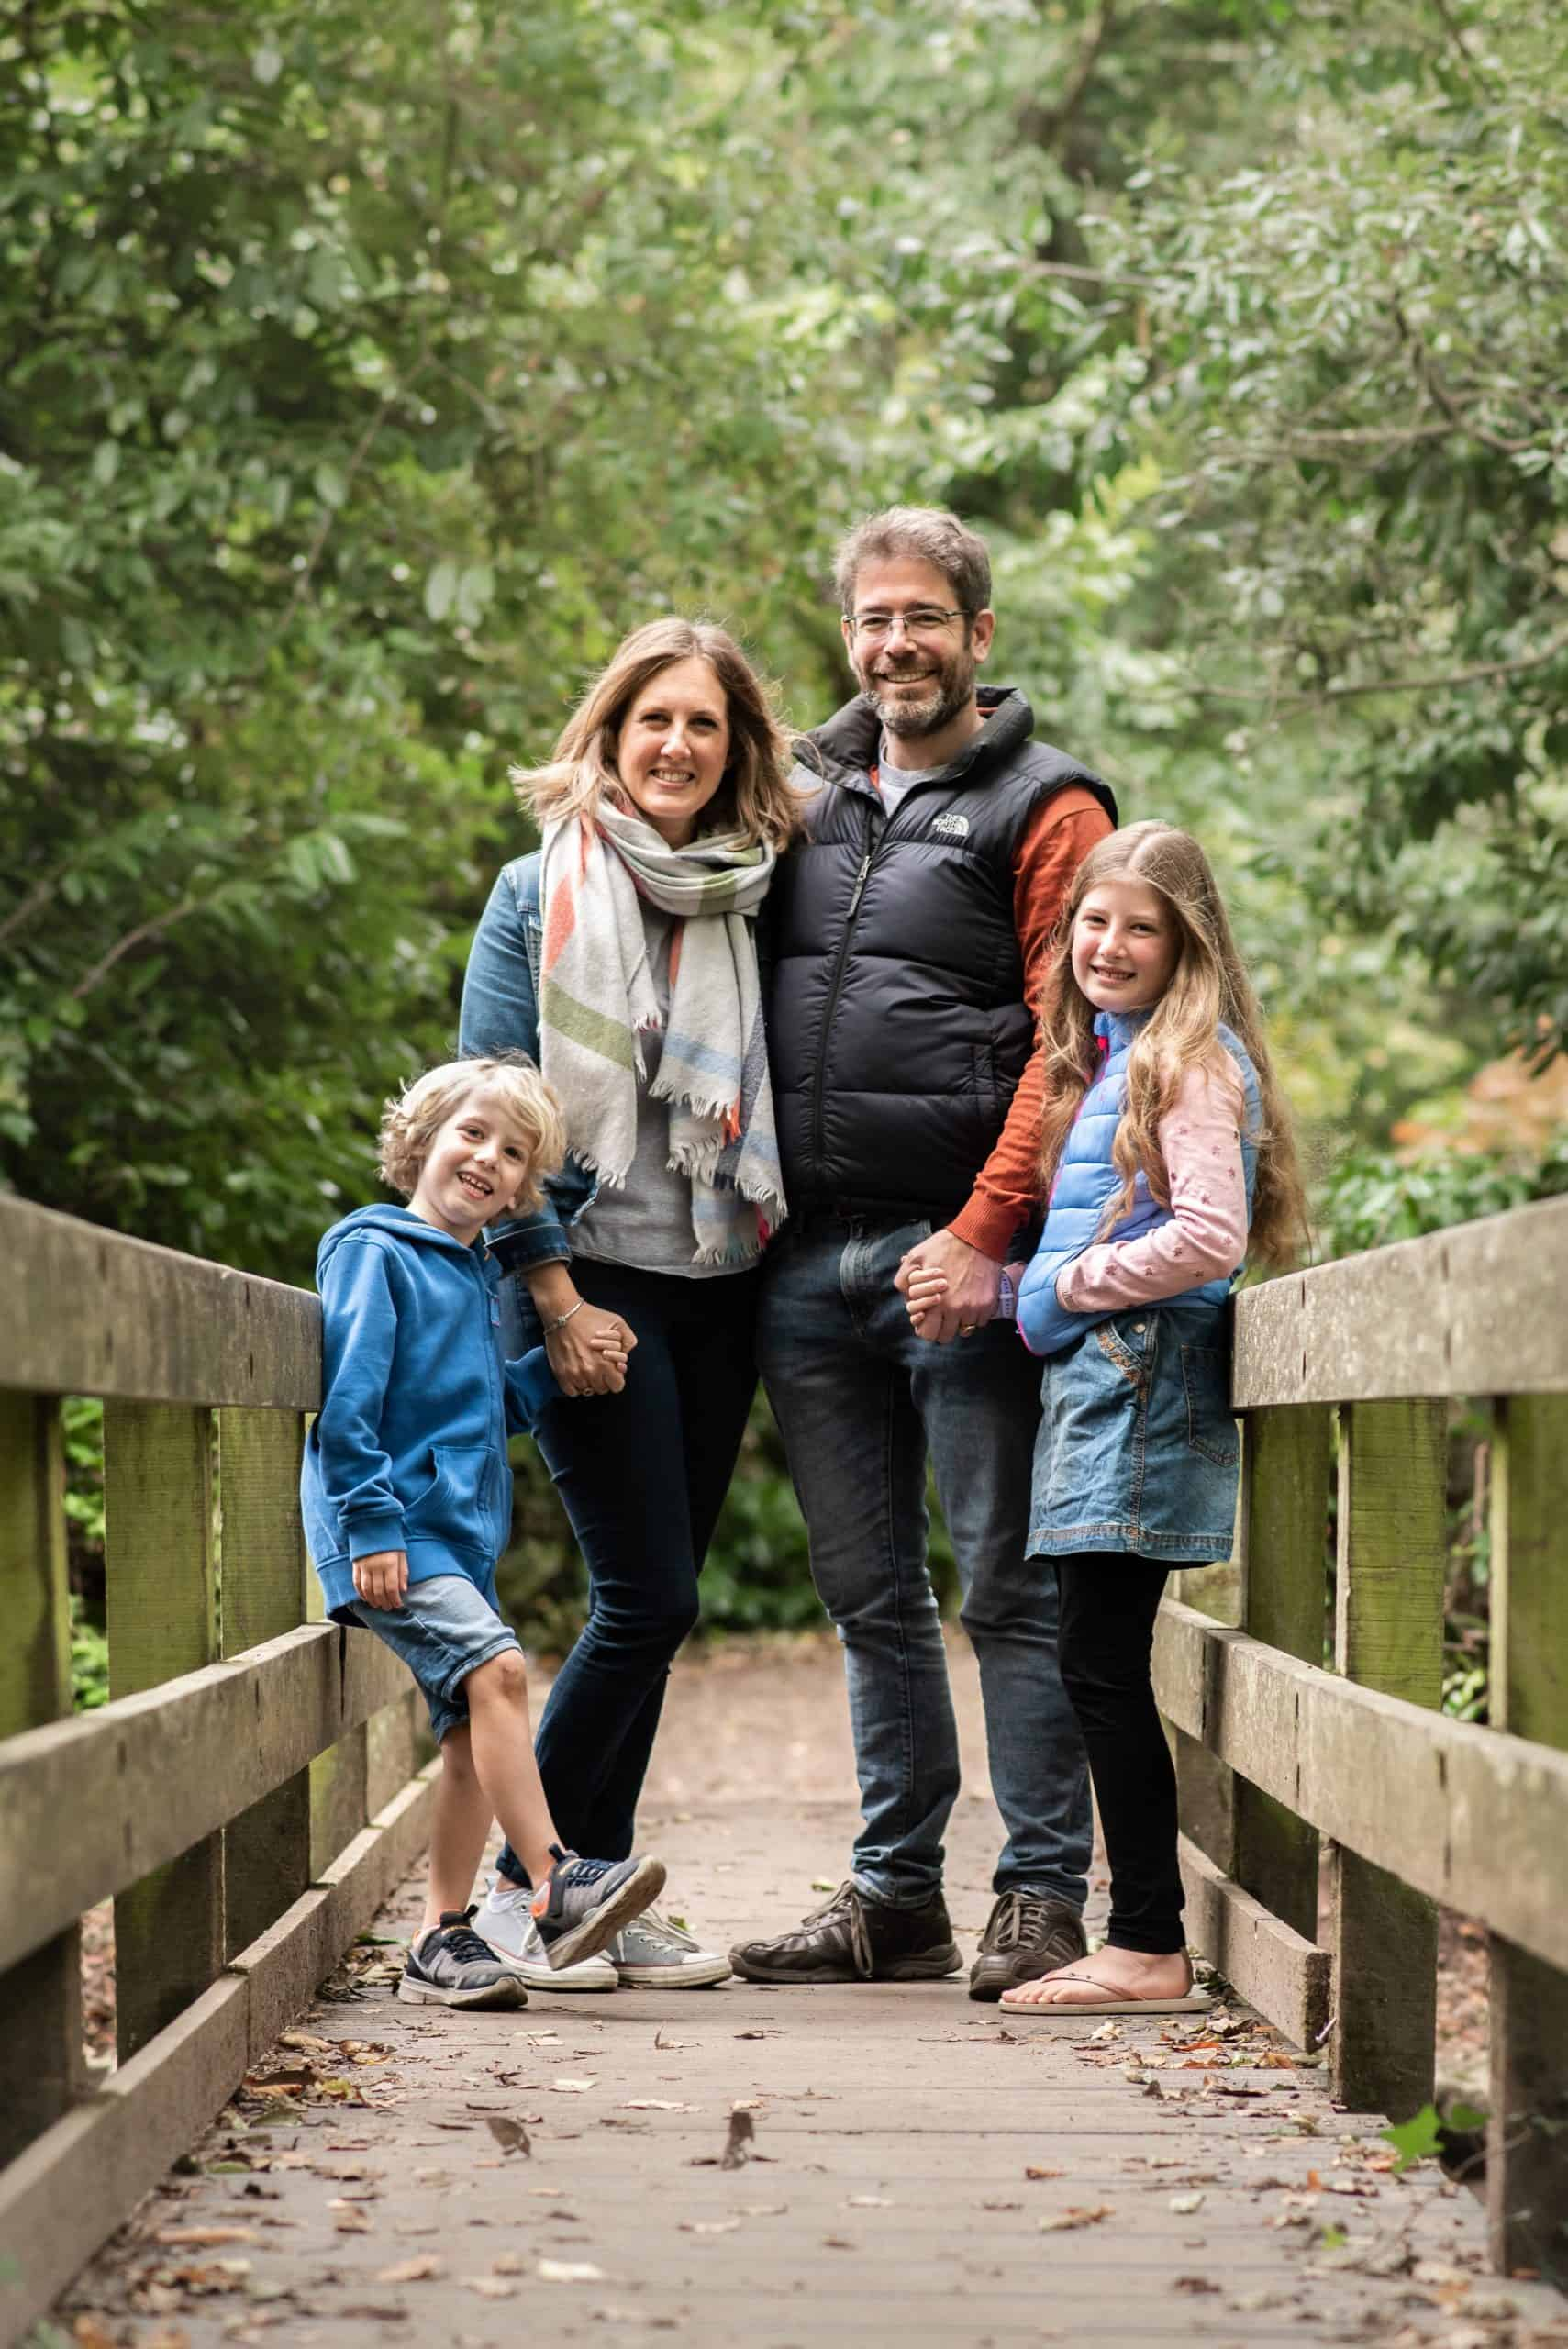 Fun family photo shoot stood on a bridge at holly hill Sarisbury Green, hampshire. holding hands and looking at the camera together with mum & Dad and the children